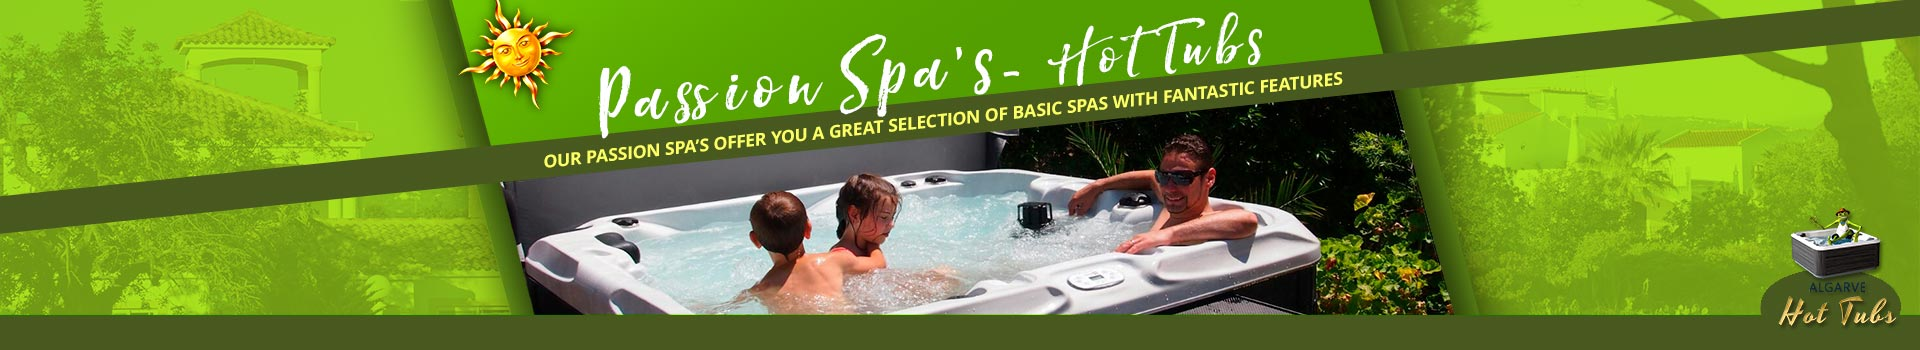 Hottubs - Passion Spa's - Wellness Dreams Algarve